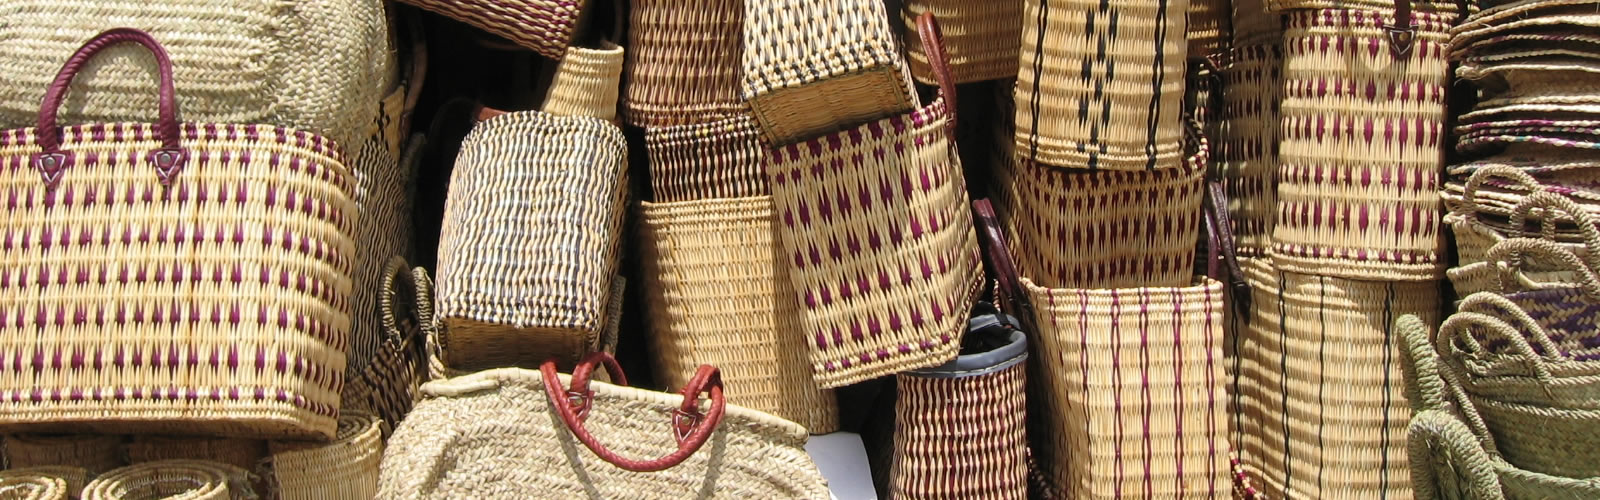 Basket Manufacturers Insurance